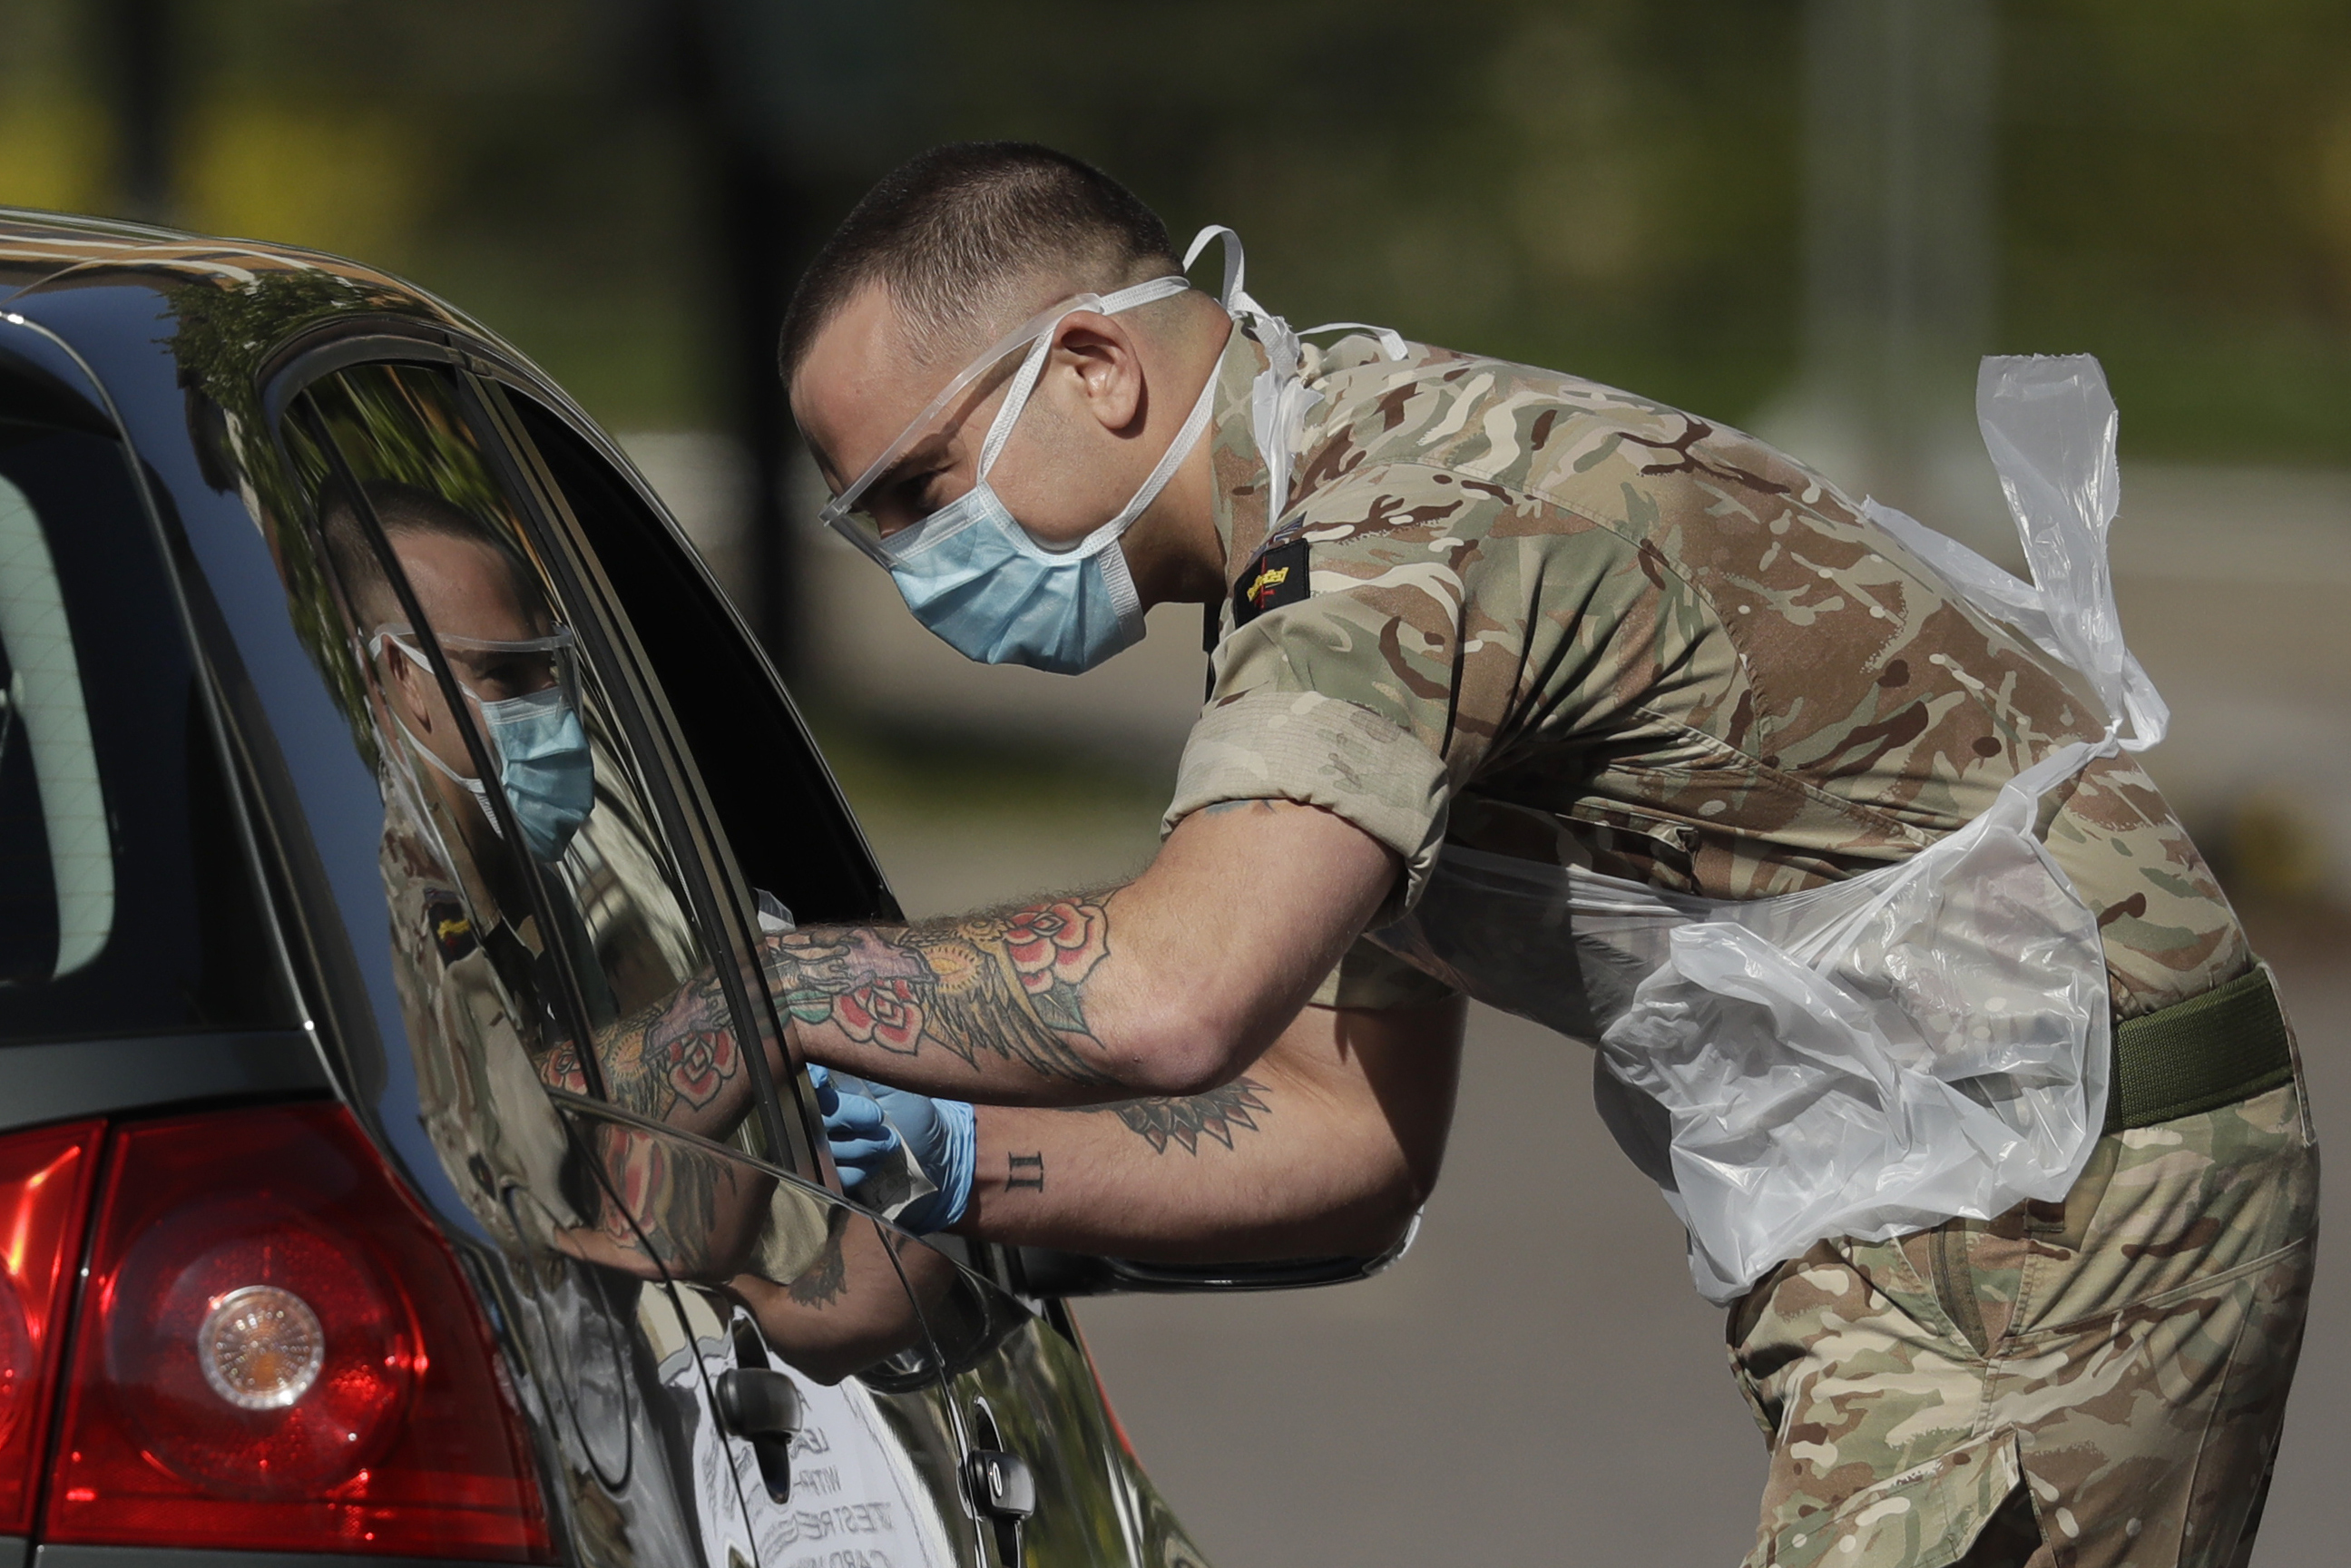 A NHS (National Health Service) worker or care worker is tested by a soldier for COVID-19 at a drive-through testing centre in a car park at Chessington World of Adventures, in Chessington, Greater London, Monday, April 20, 2020. The highly contagious COVID-19 coronavirus has impacted on nations around the globe, many imposing self isolation and exercising social distancing when people move from their homes. (AP Photo/Matt Dunham)